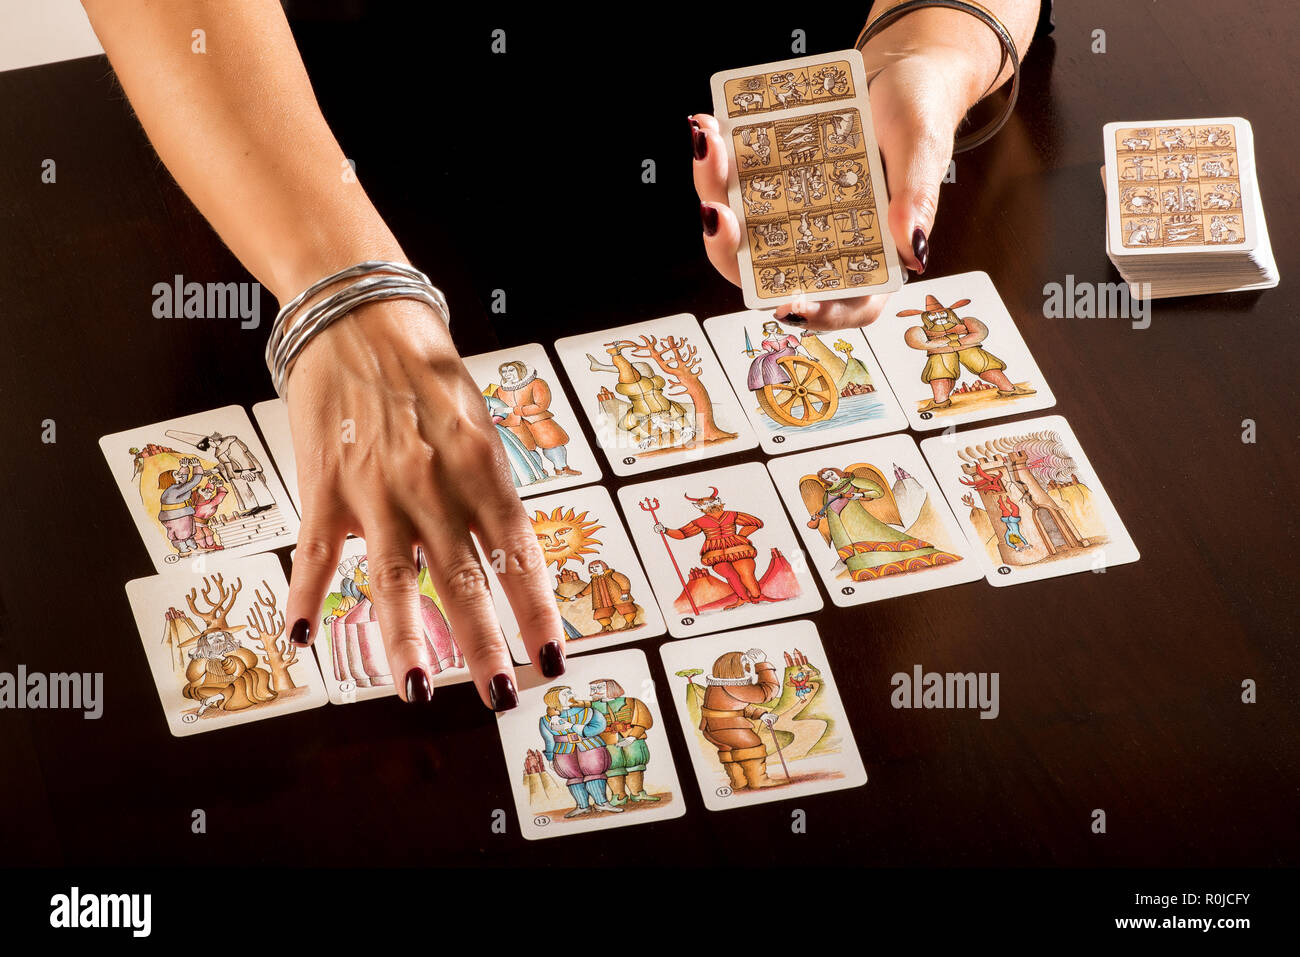 Fortune teller laying out a deck of tarot cards as she predicts the future for a client in a close up view on the pictorial allegorical cards and her  - Stock Image